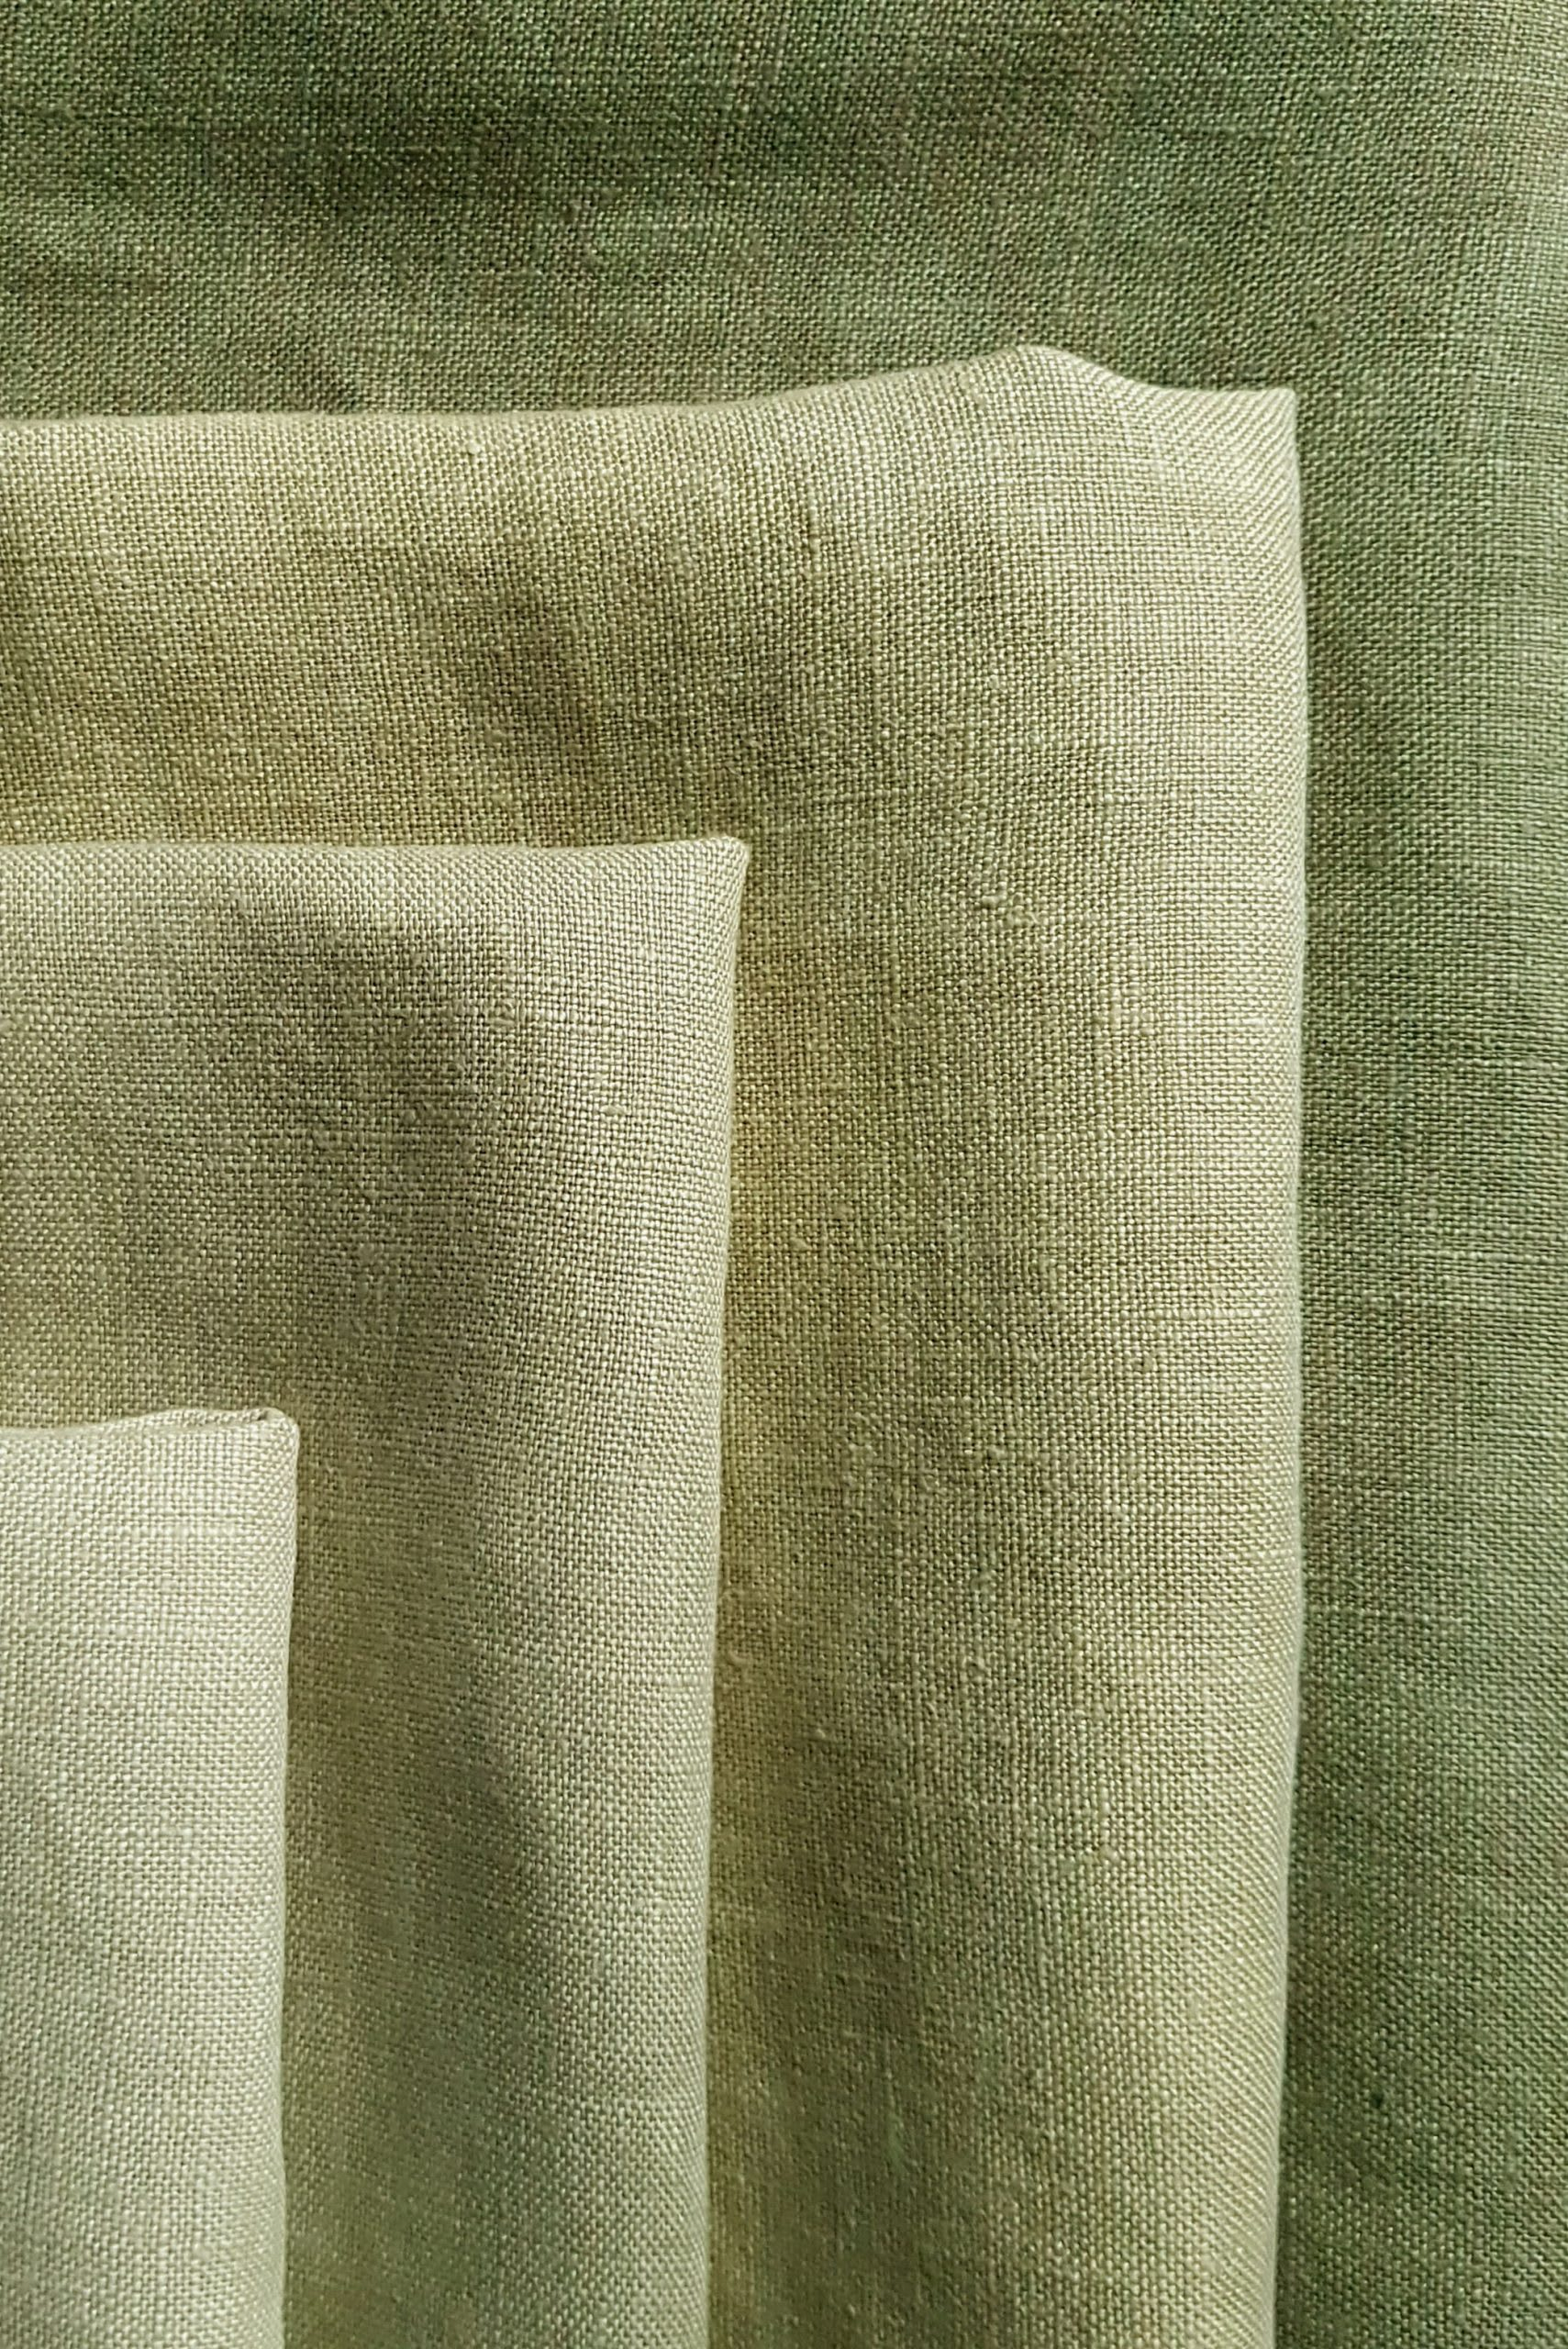 close up of linen hand dyed shades of Dylon Olive Green